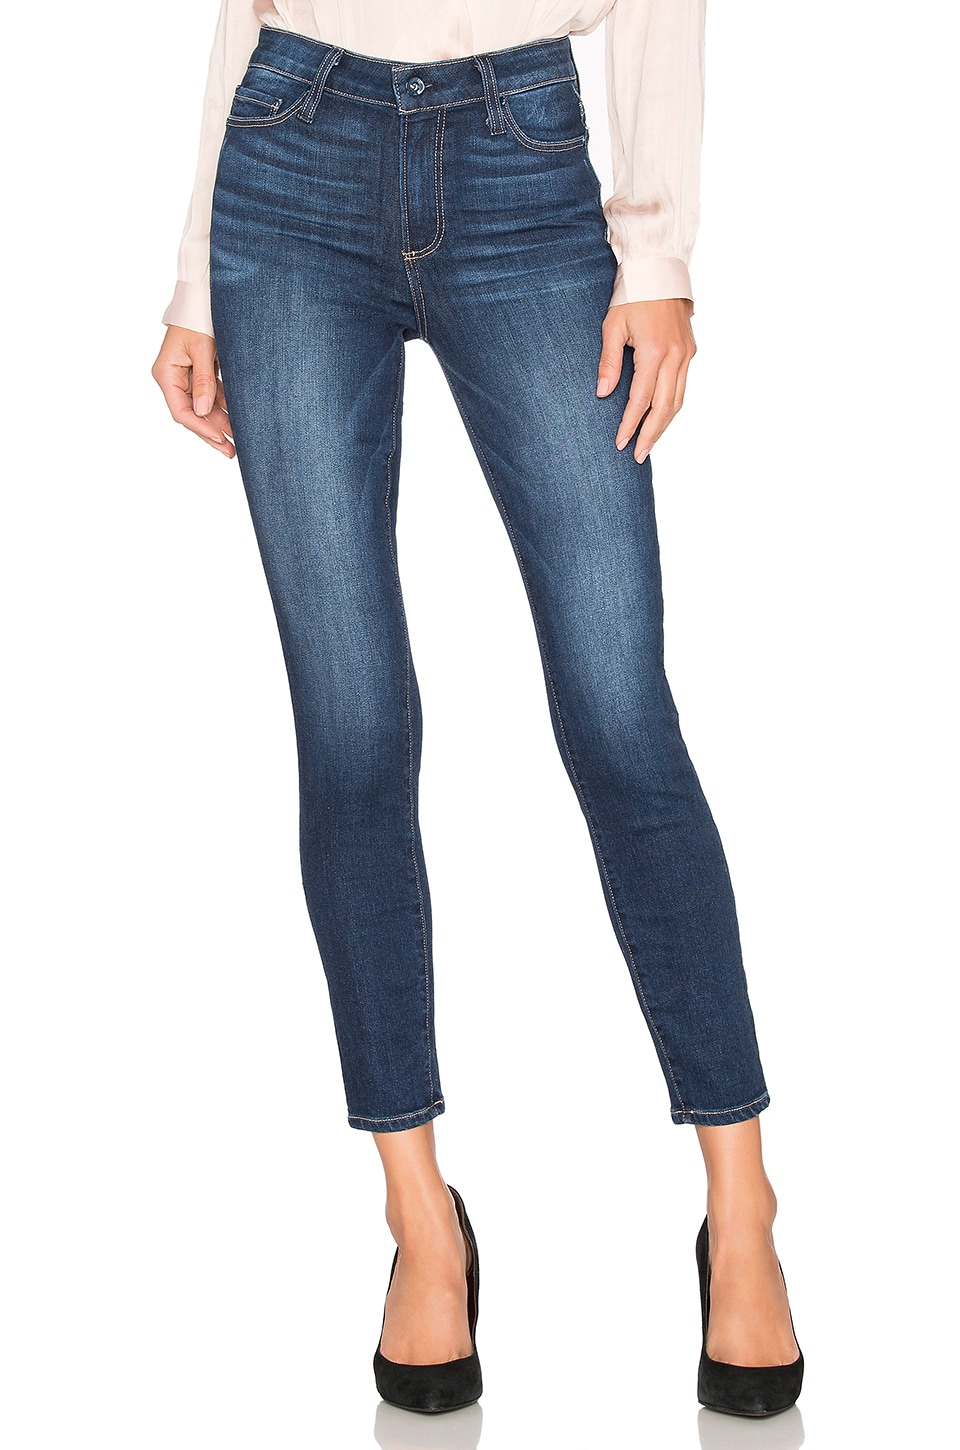 PAIGE JEAN SKINNY HOXTON ANKLE